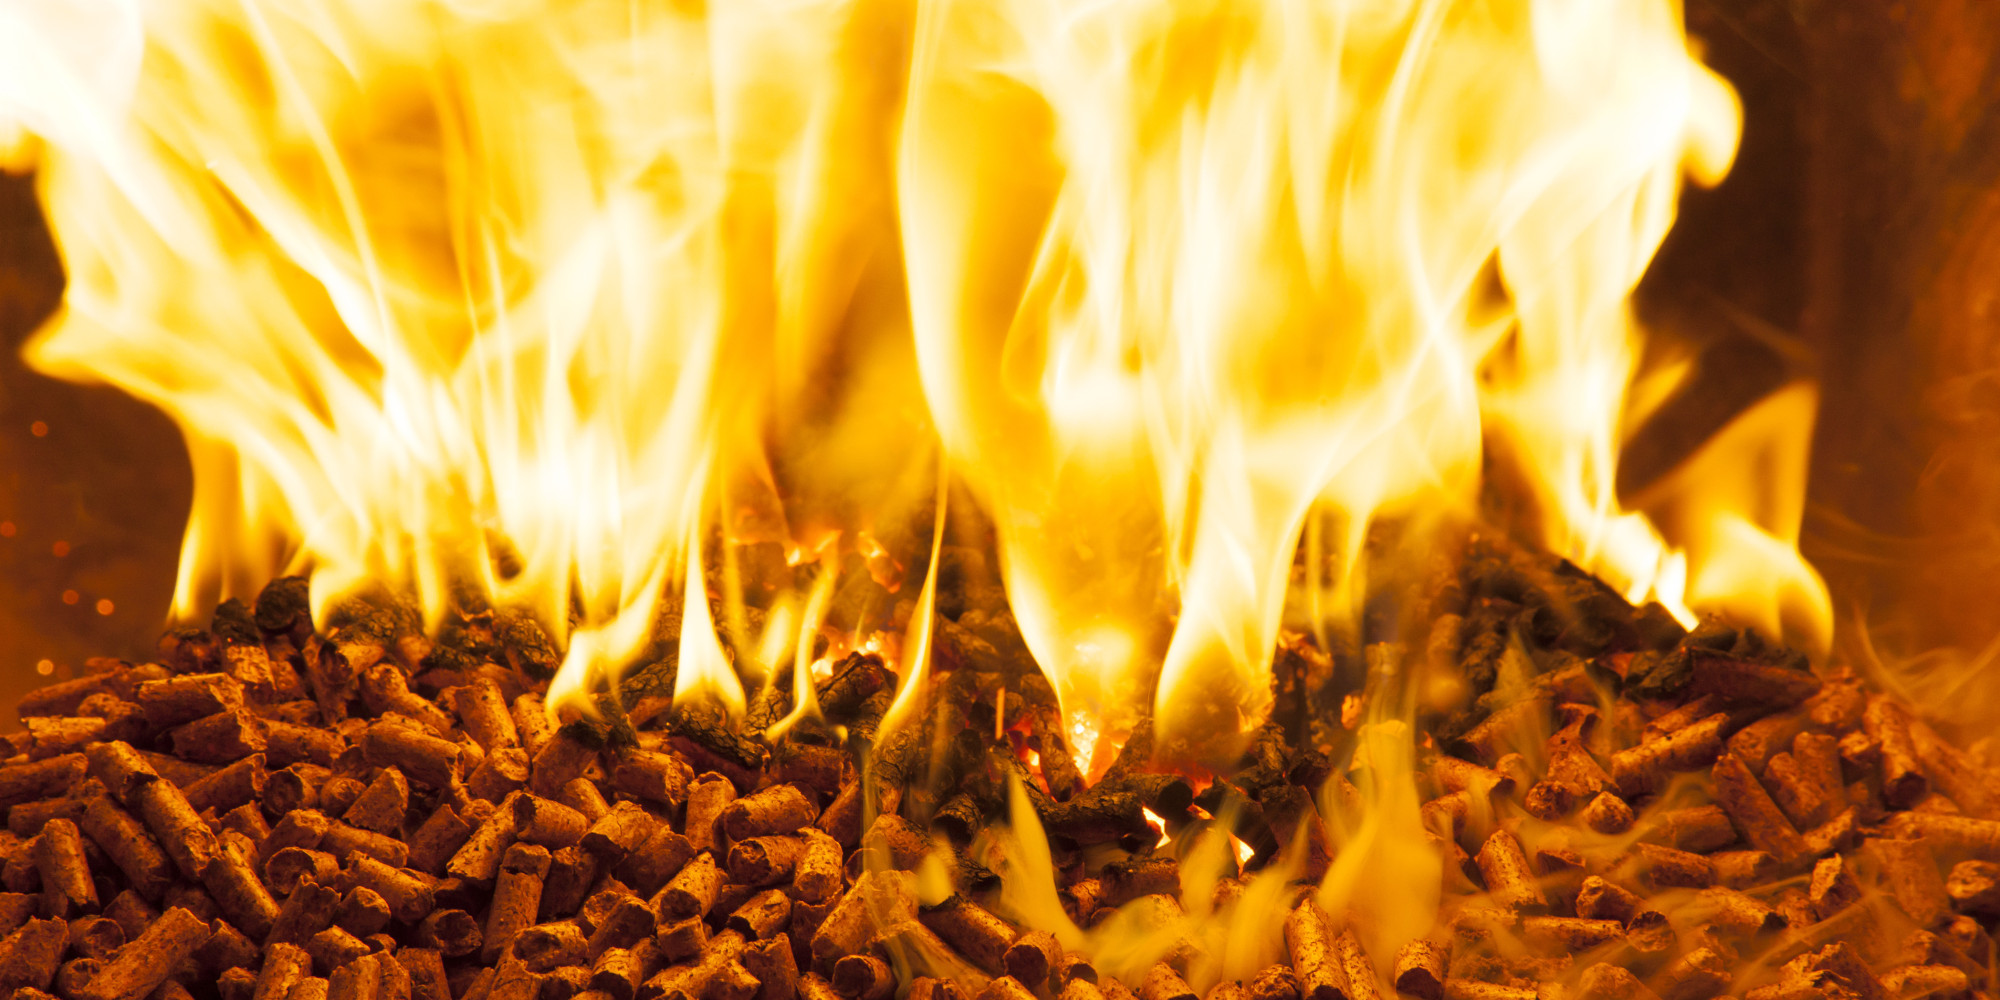 Burning Wood Biomass ~ Big biomass when burning wood for energy makes sense